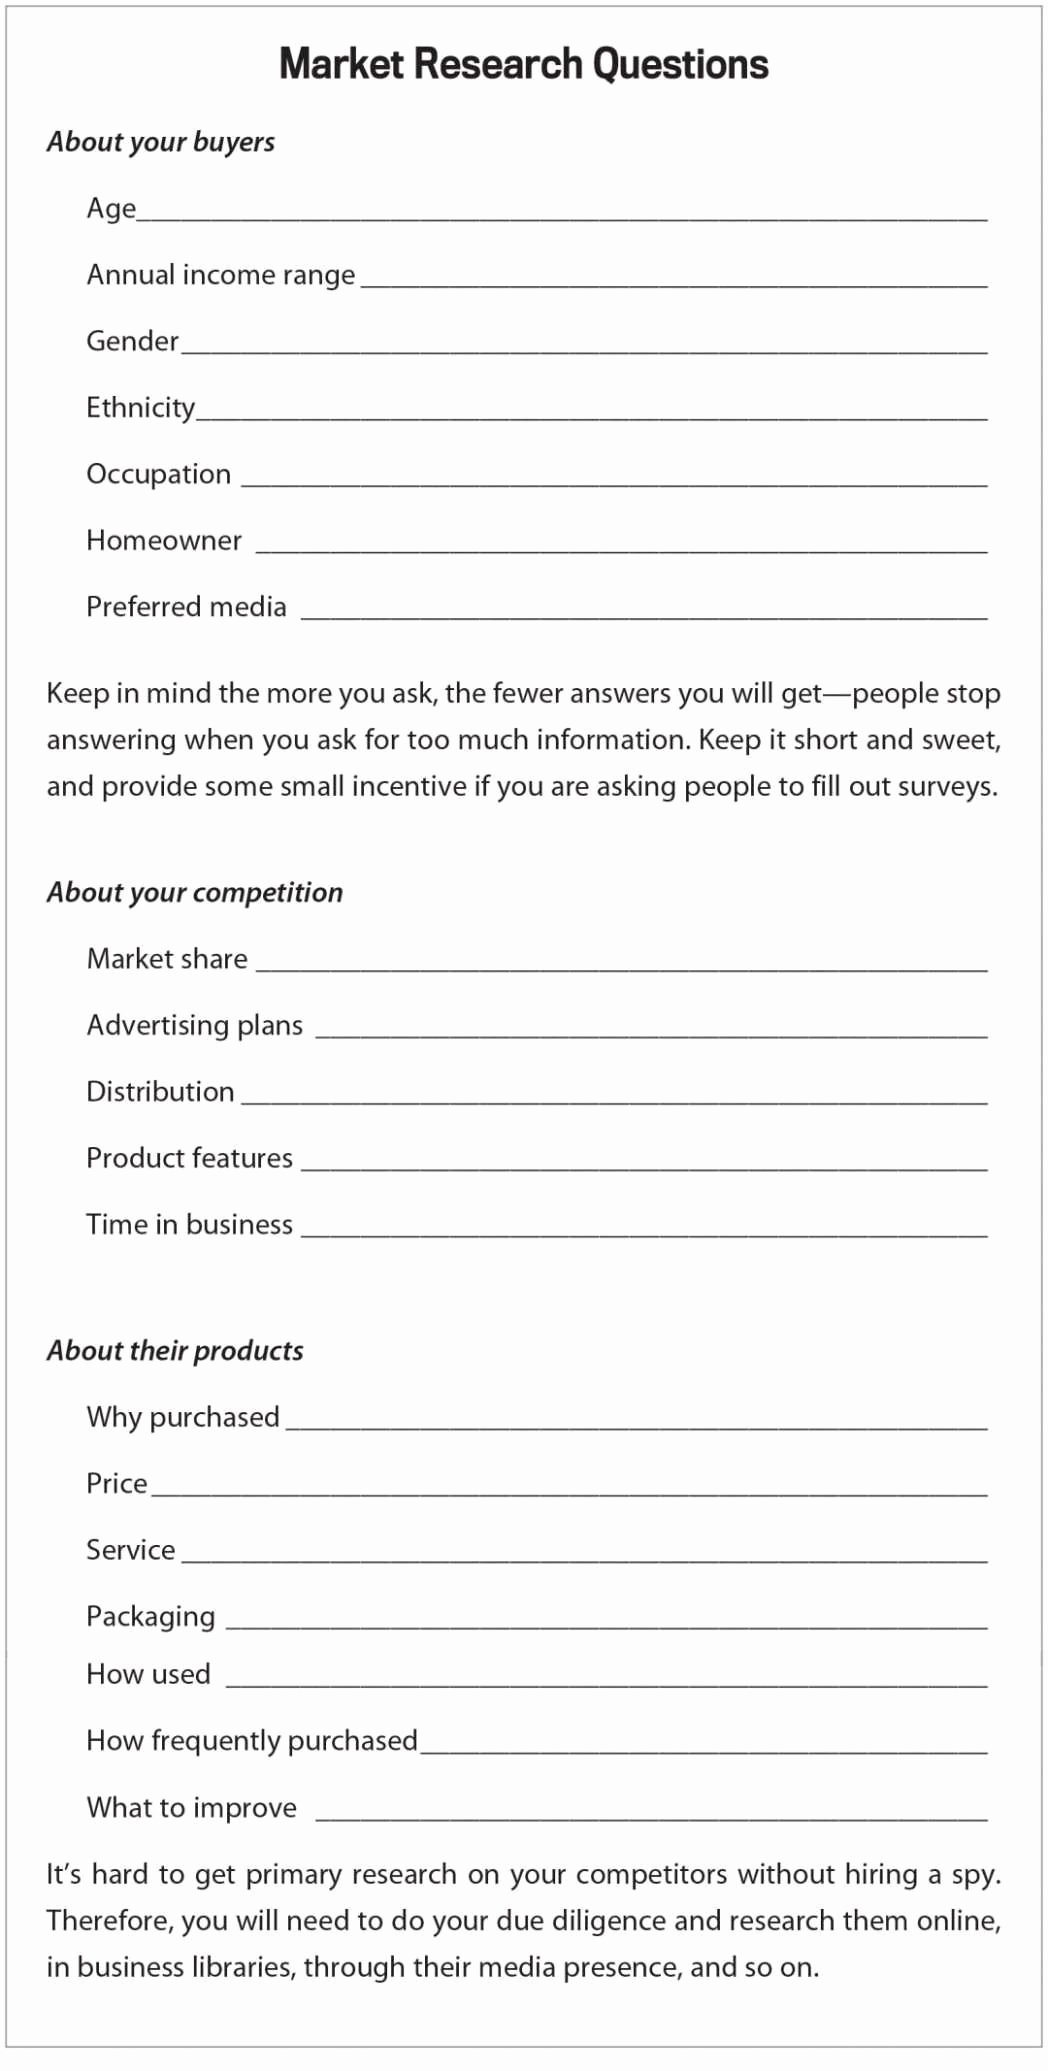 Growthink Business Plan Template Free Best Growthink